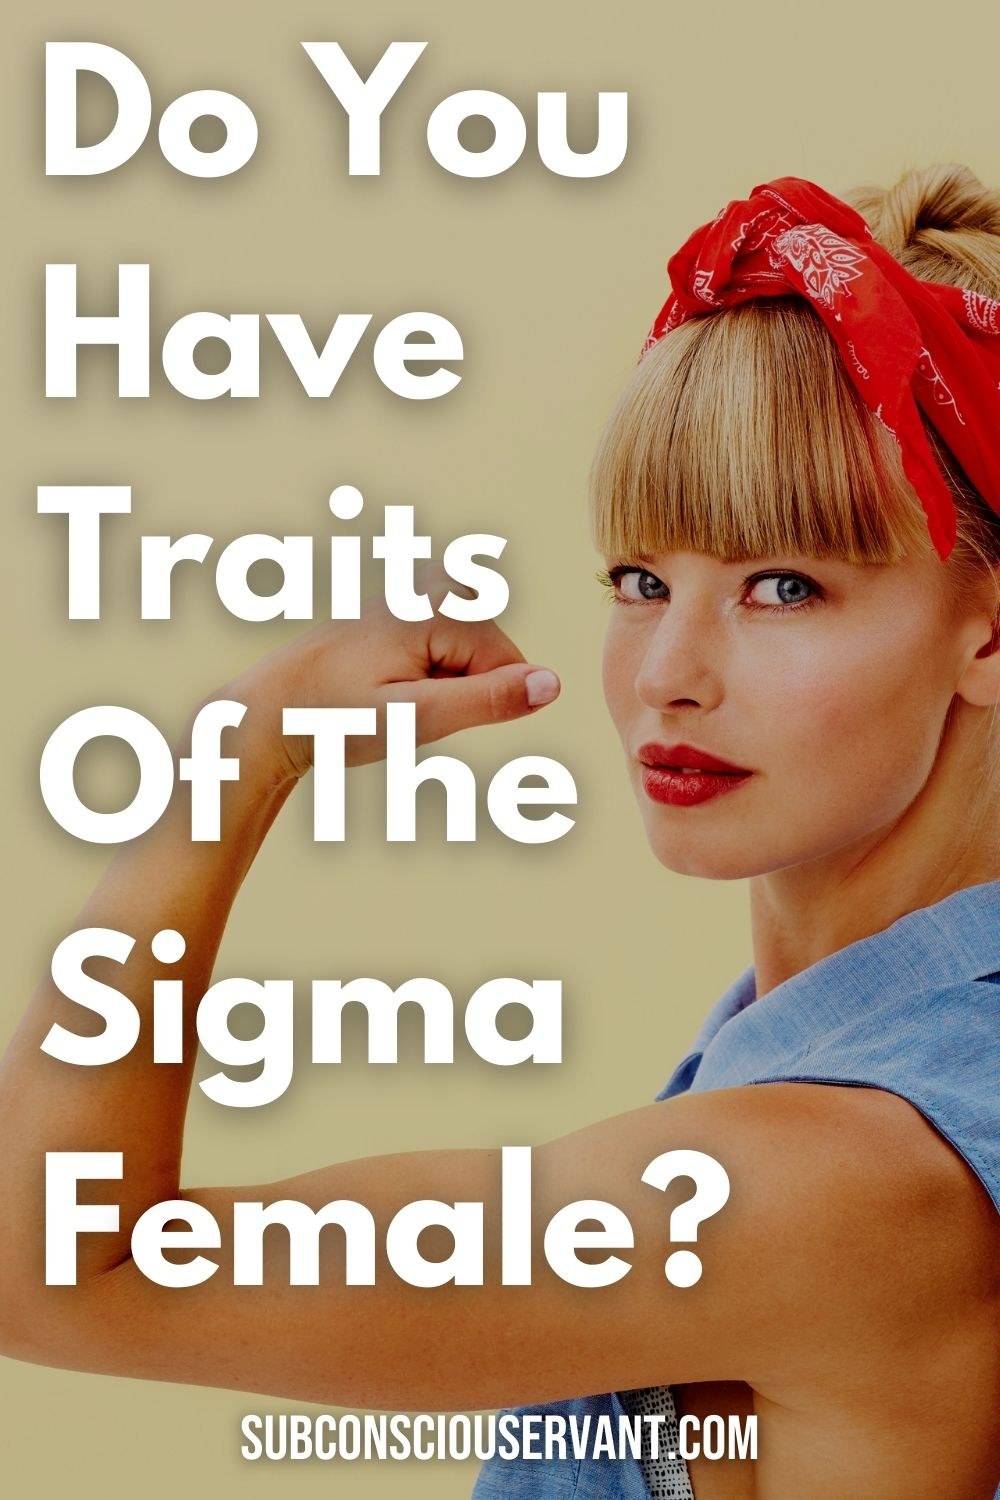 7 Amazing Traits Of The Sigma Female (Do You Fit The Type?)